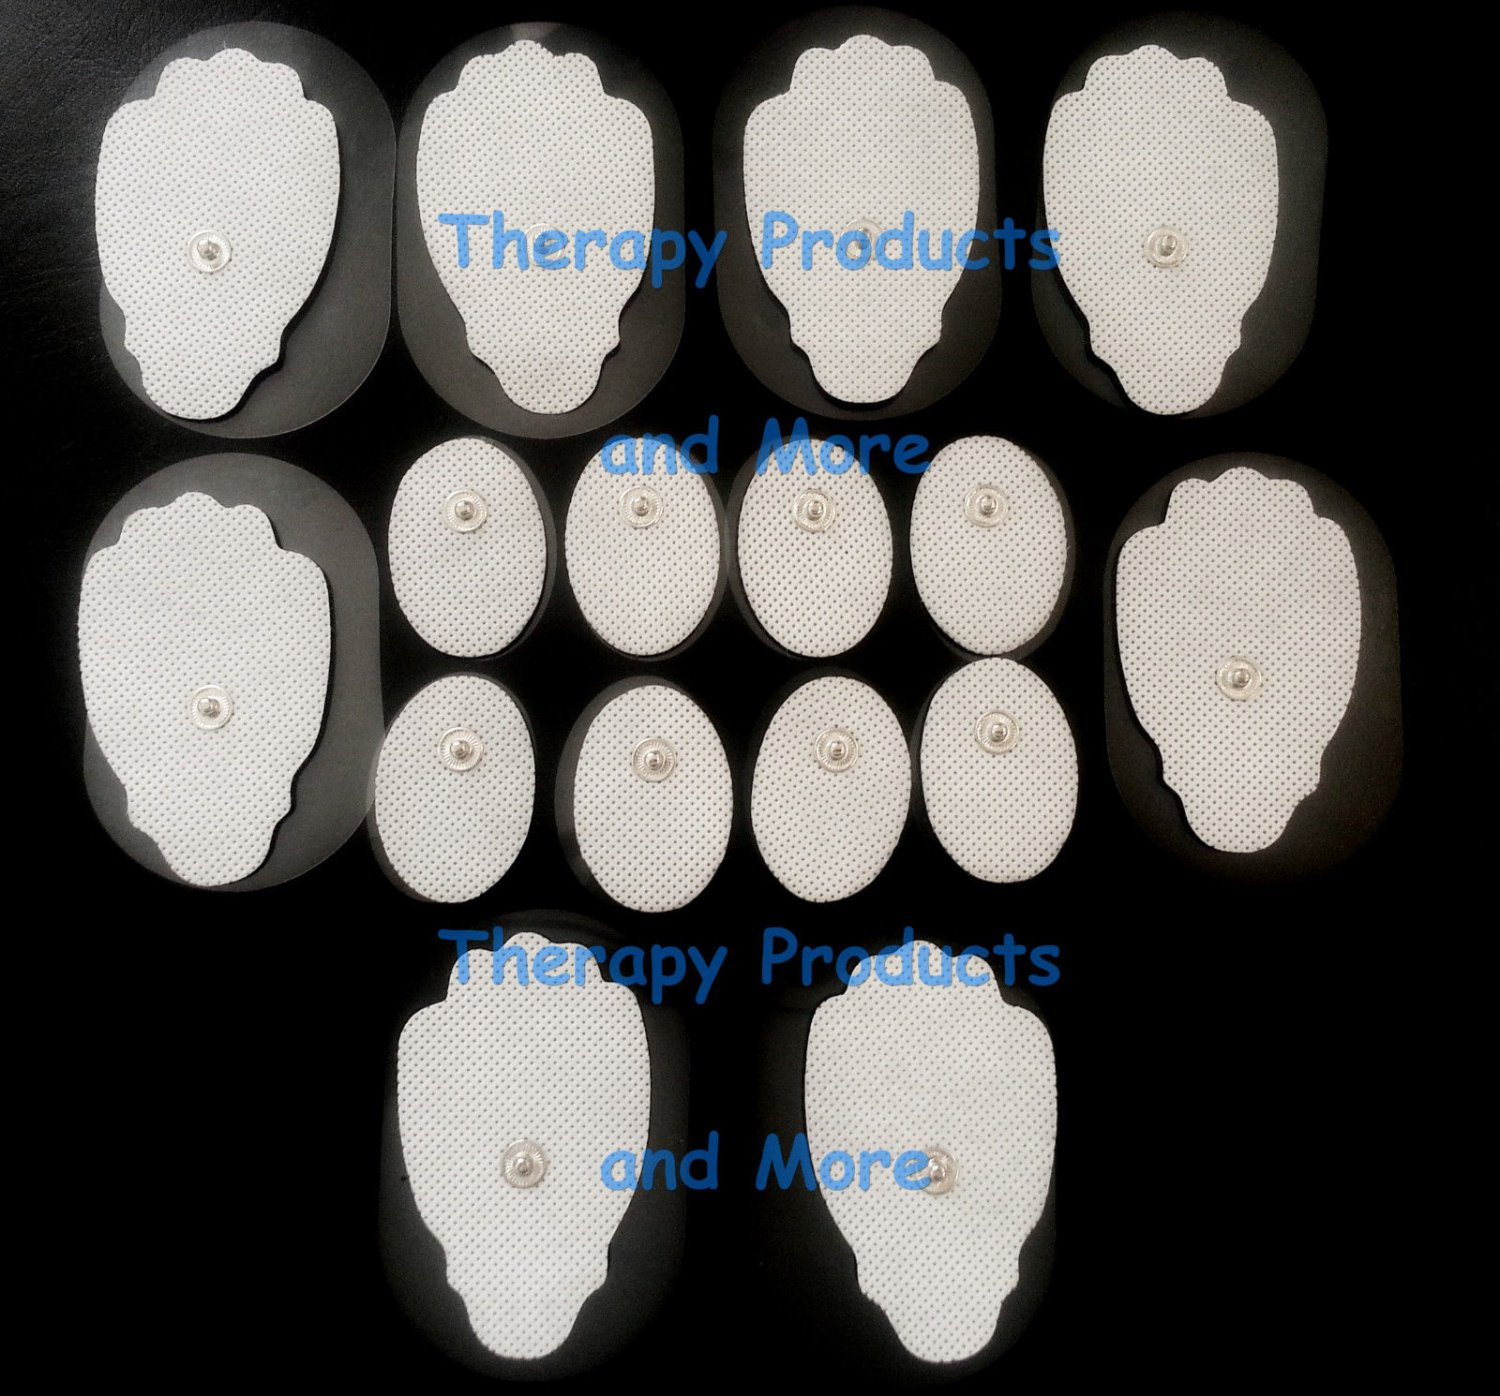 REPLACEMENT ELECTRODE PADS COMBO (8 LG, 8 SM OVAL) FOR IQ DIGITAL MASSAGER, TENS